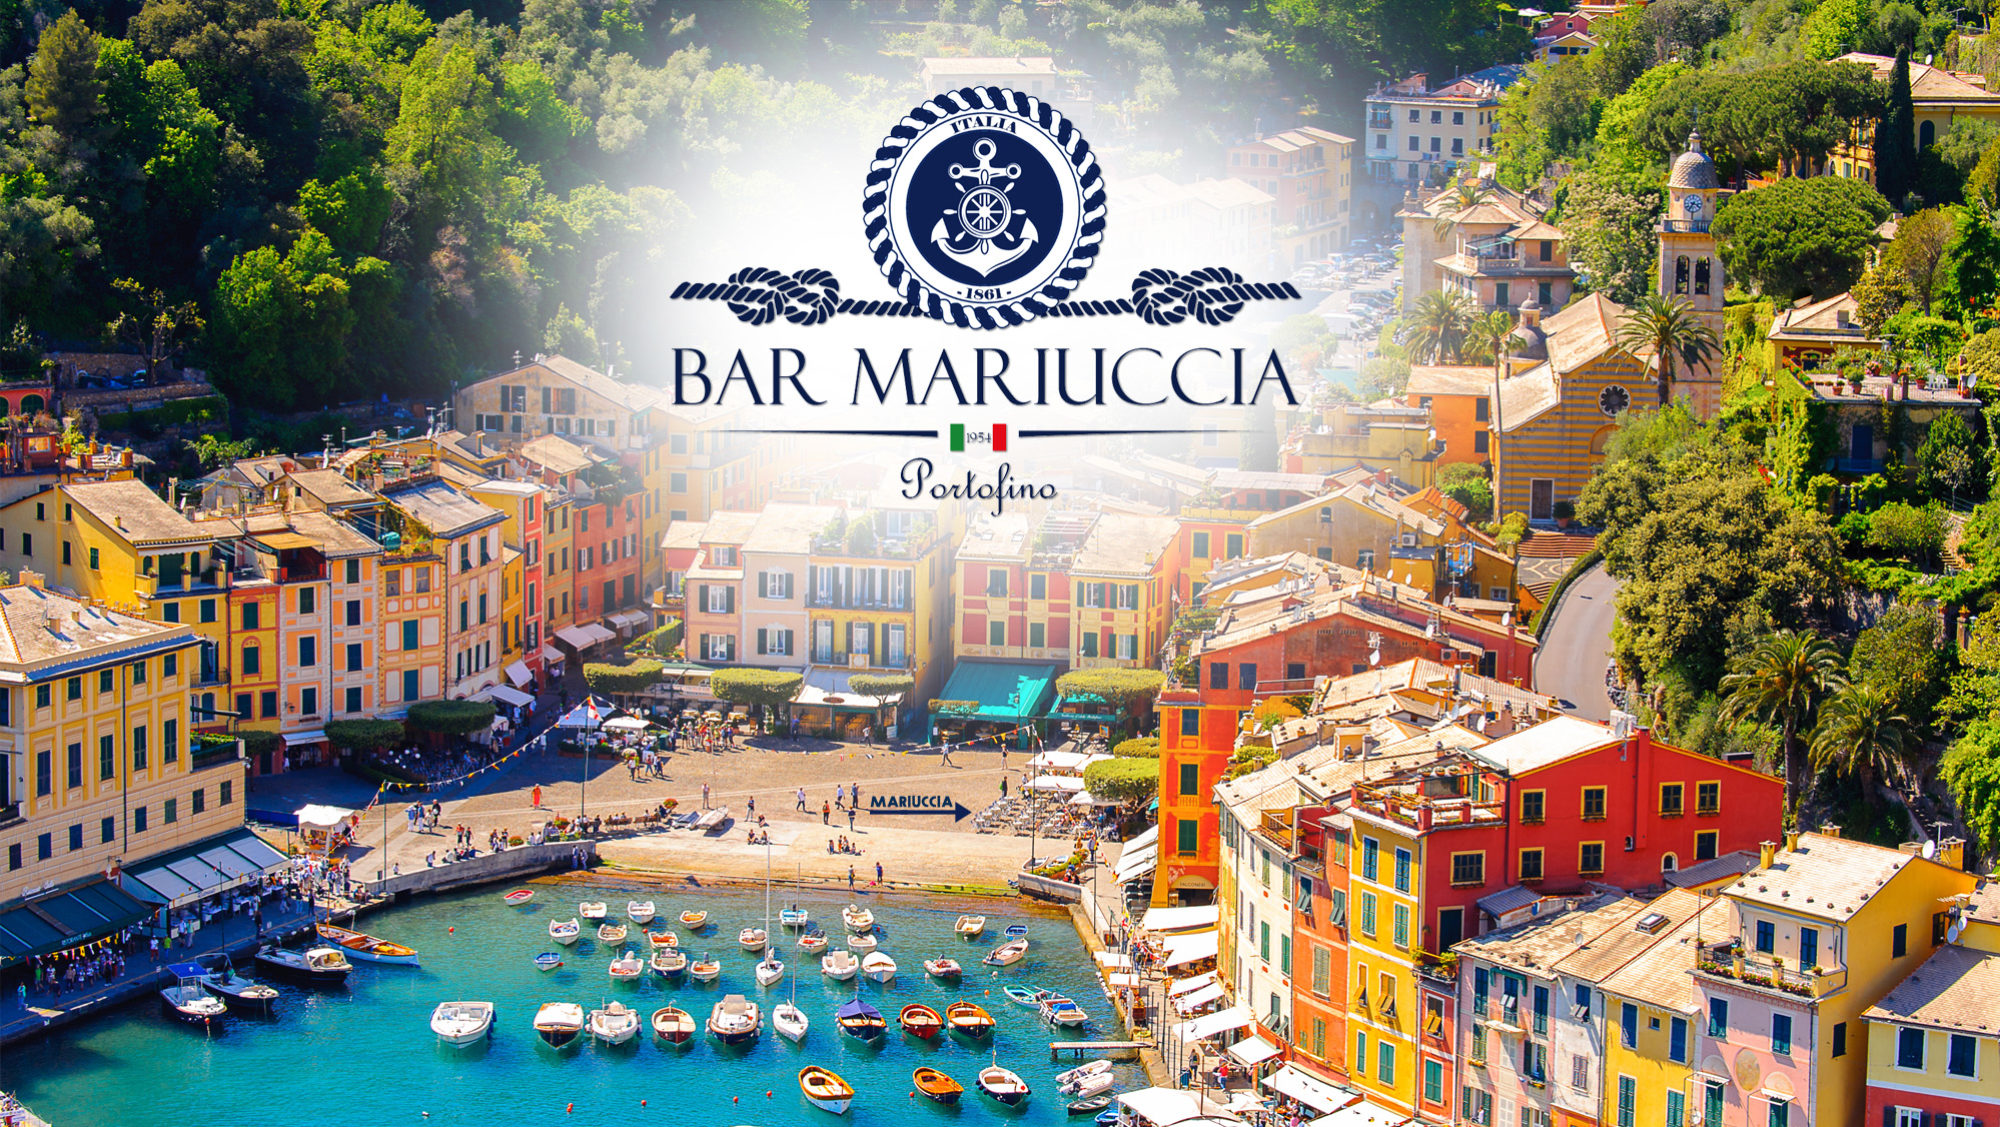 BAR MARIUCCIA PORTOFINO 1954® - Official Website